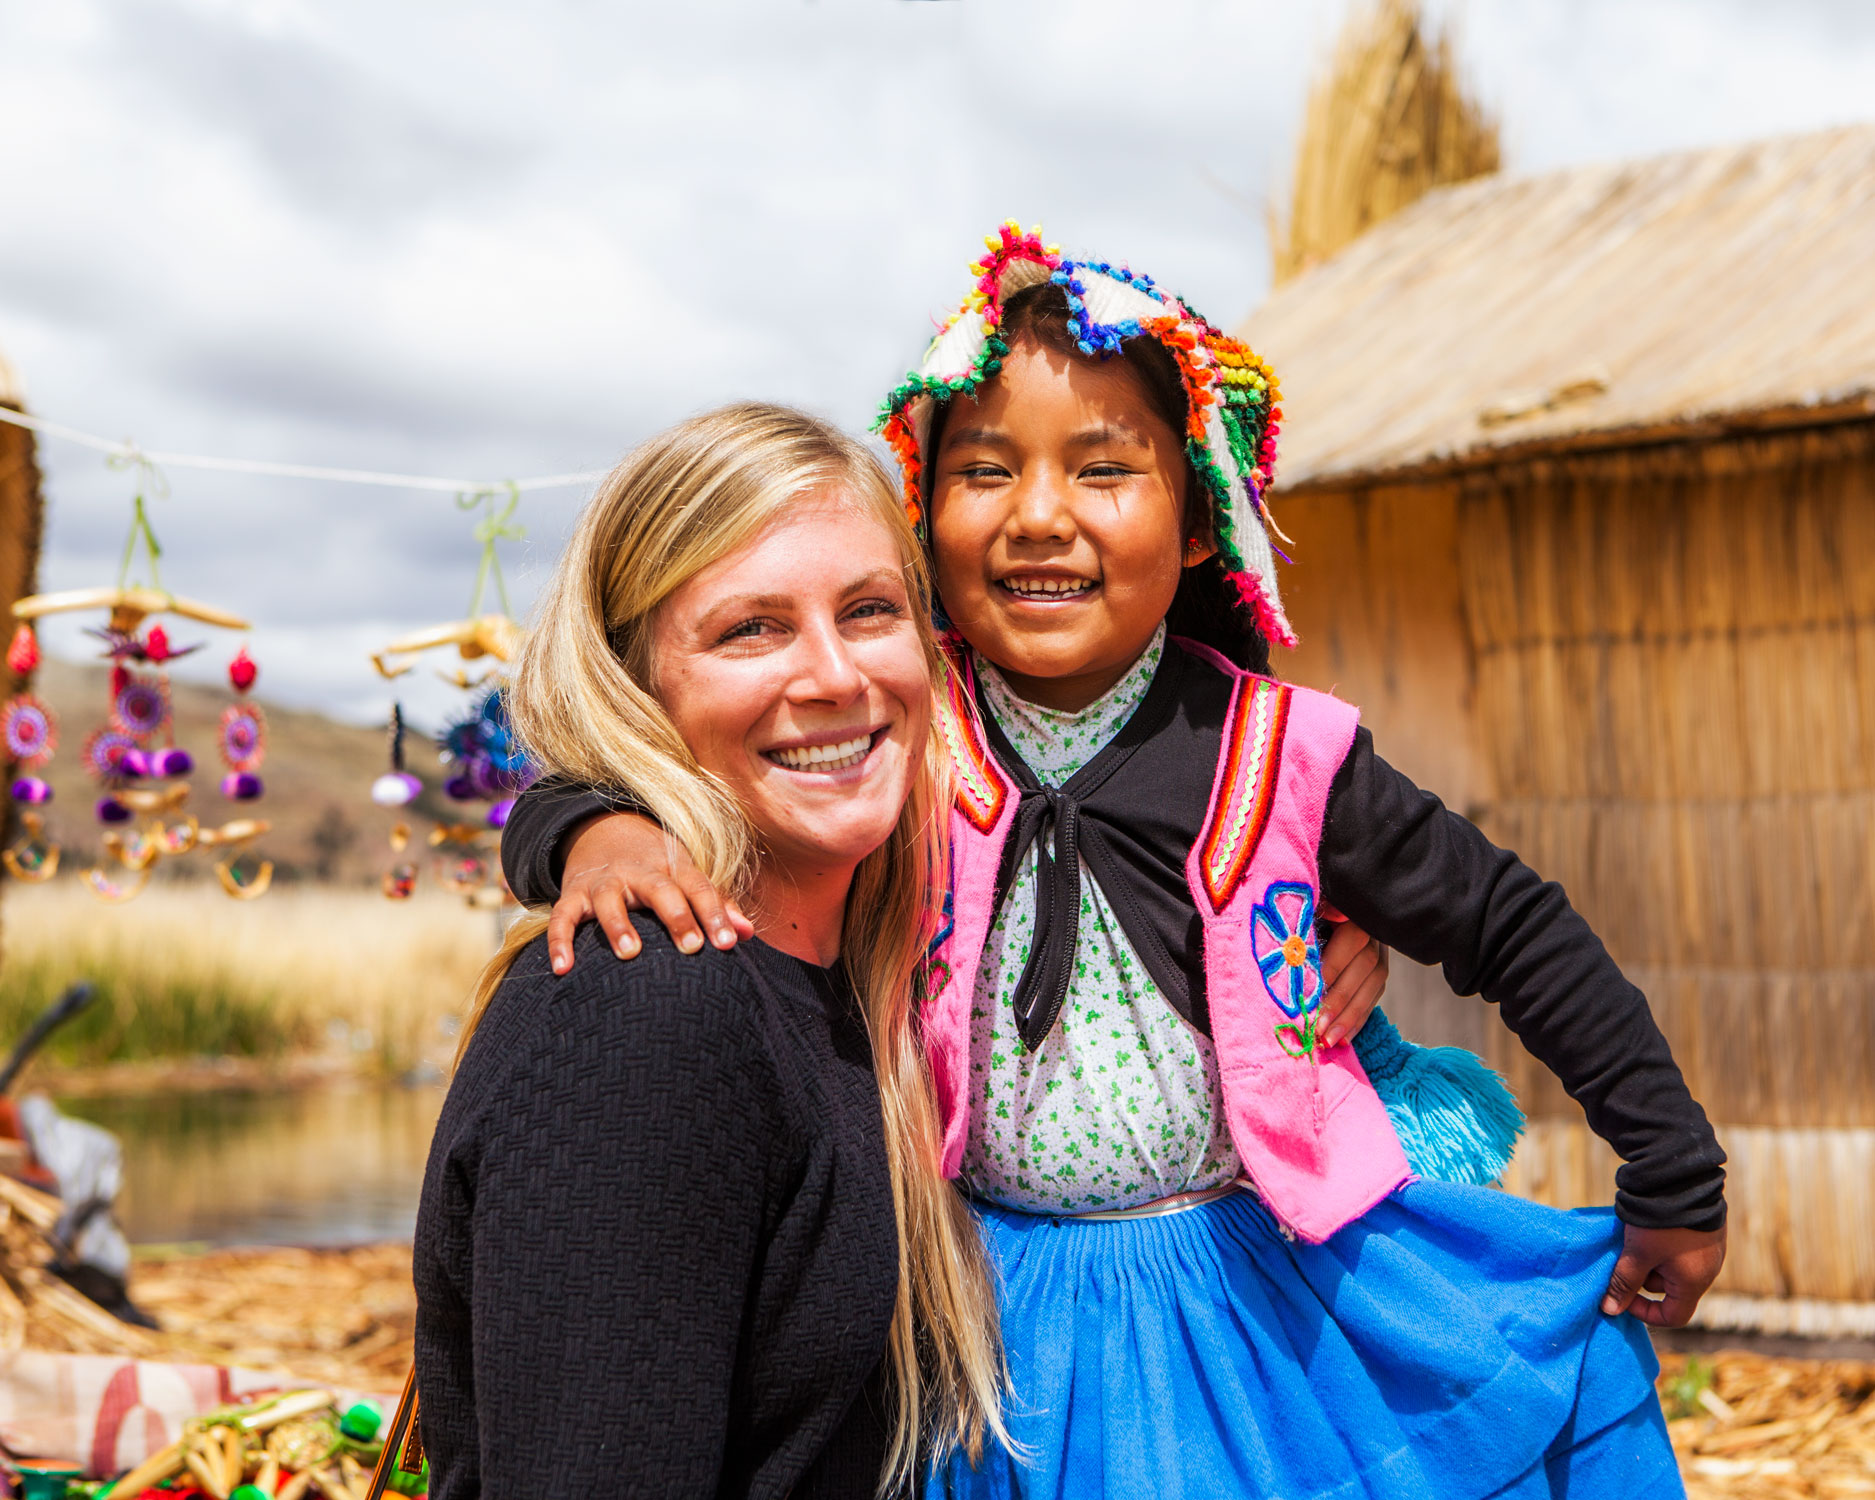 lake-titicaca-puno-peru-wander-south-reed-islands-meg-and-girl.jpg